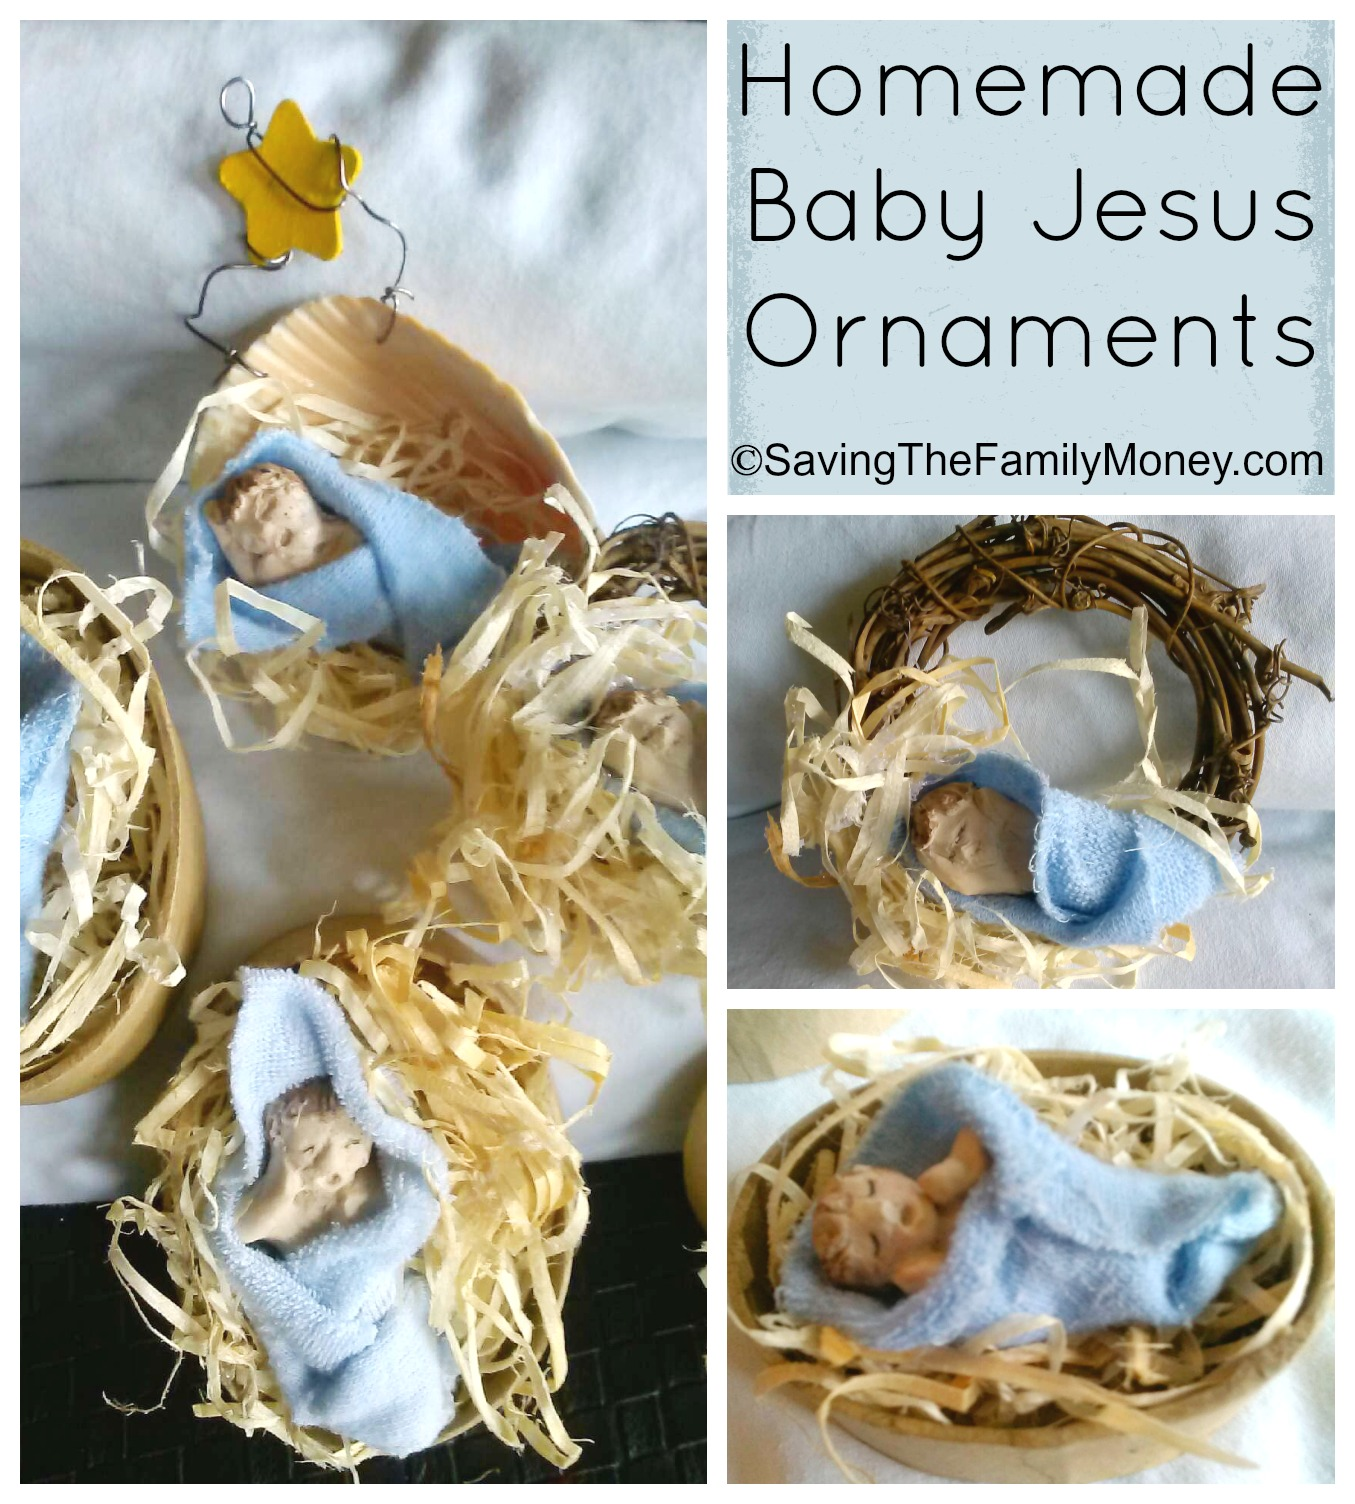 Homemade Baby Jesus Ornaments